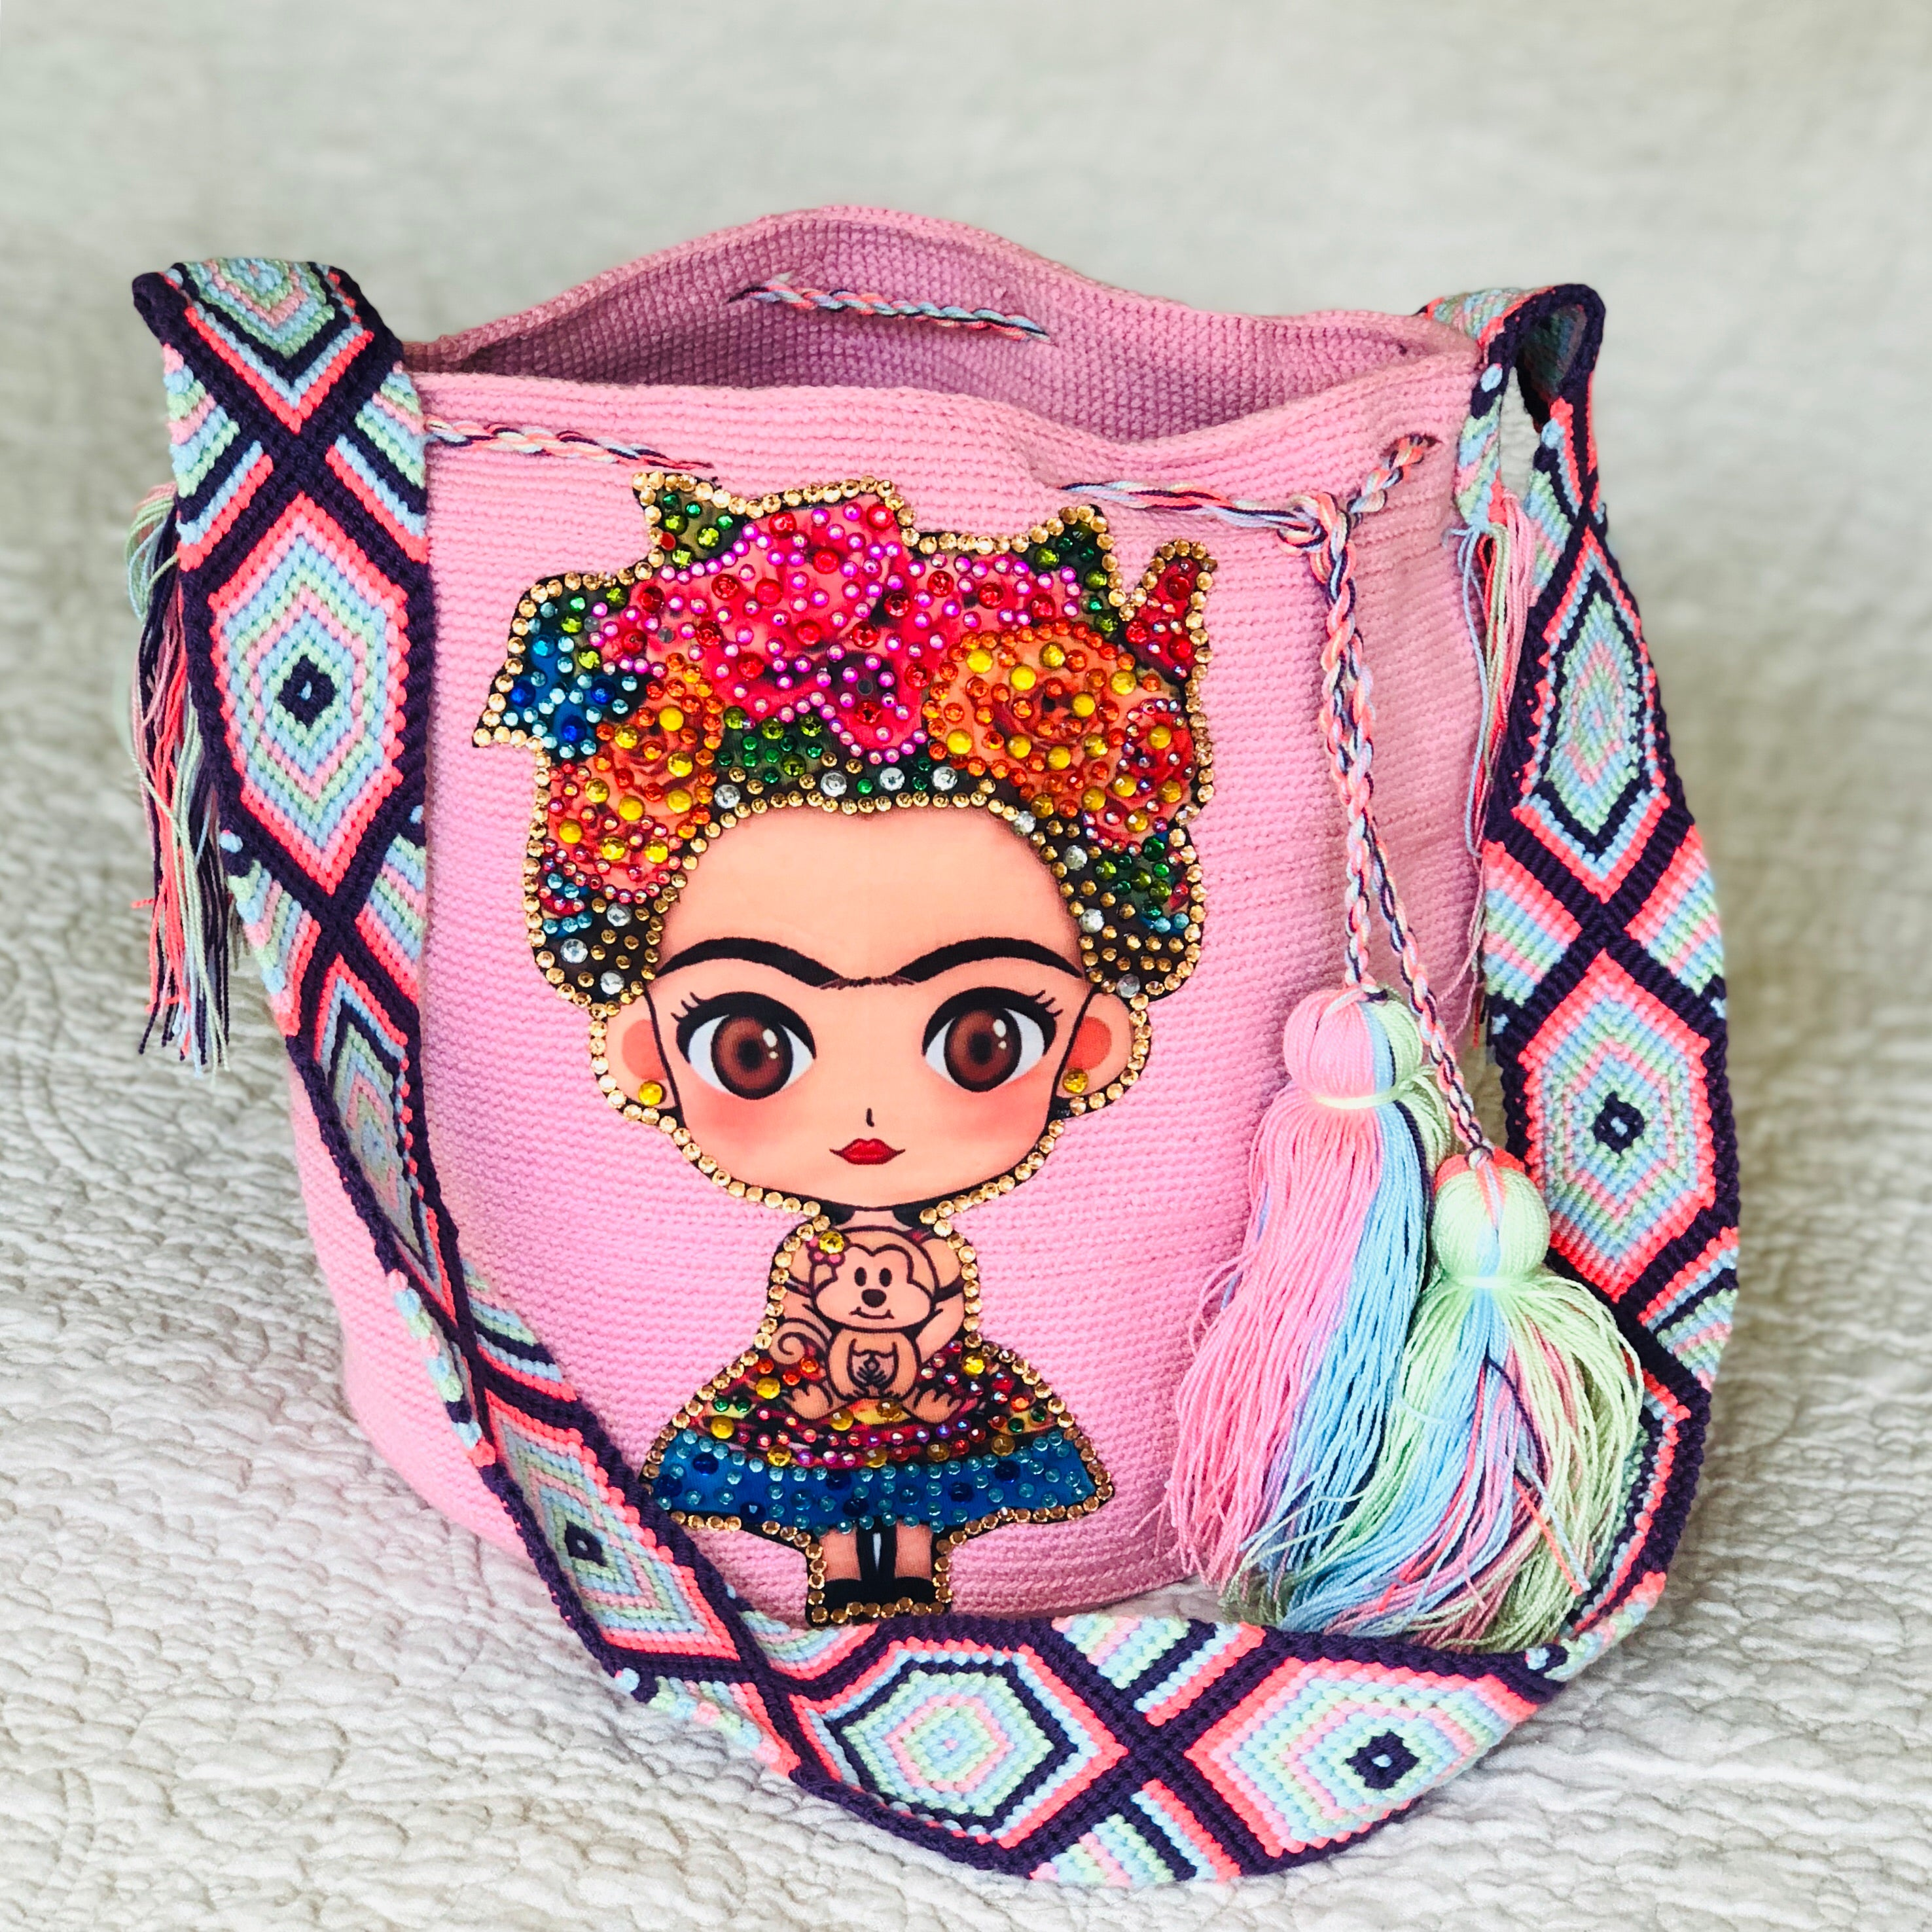 PINK FRIDA Inspired Crochet Bag - Crossbody Bucket Bag-Boho -Wayuu